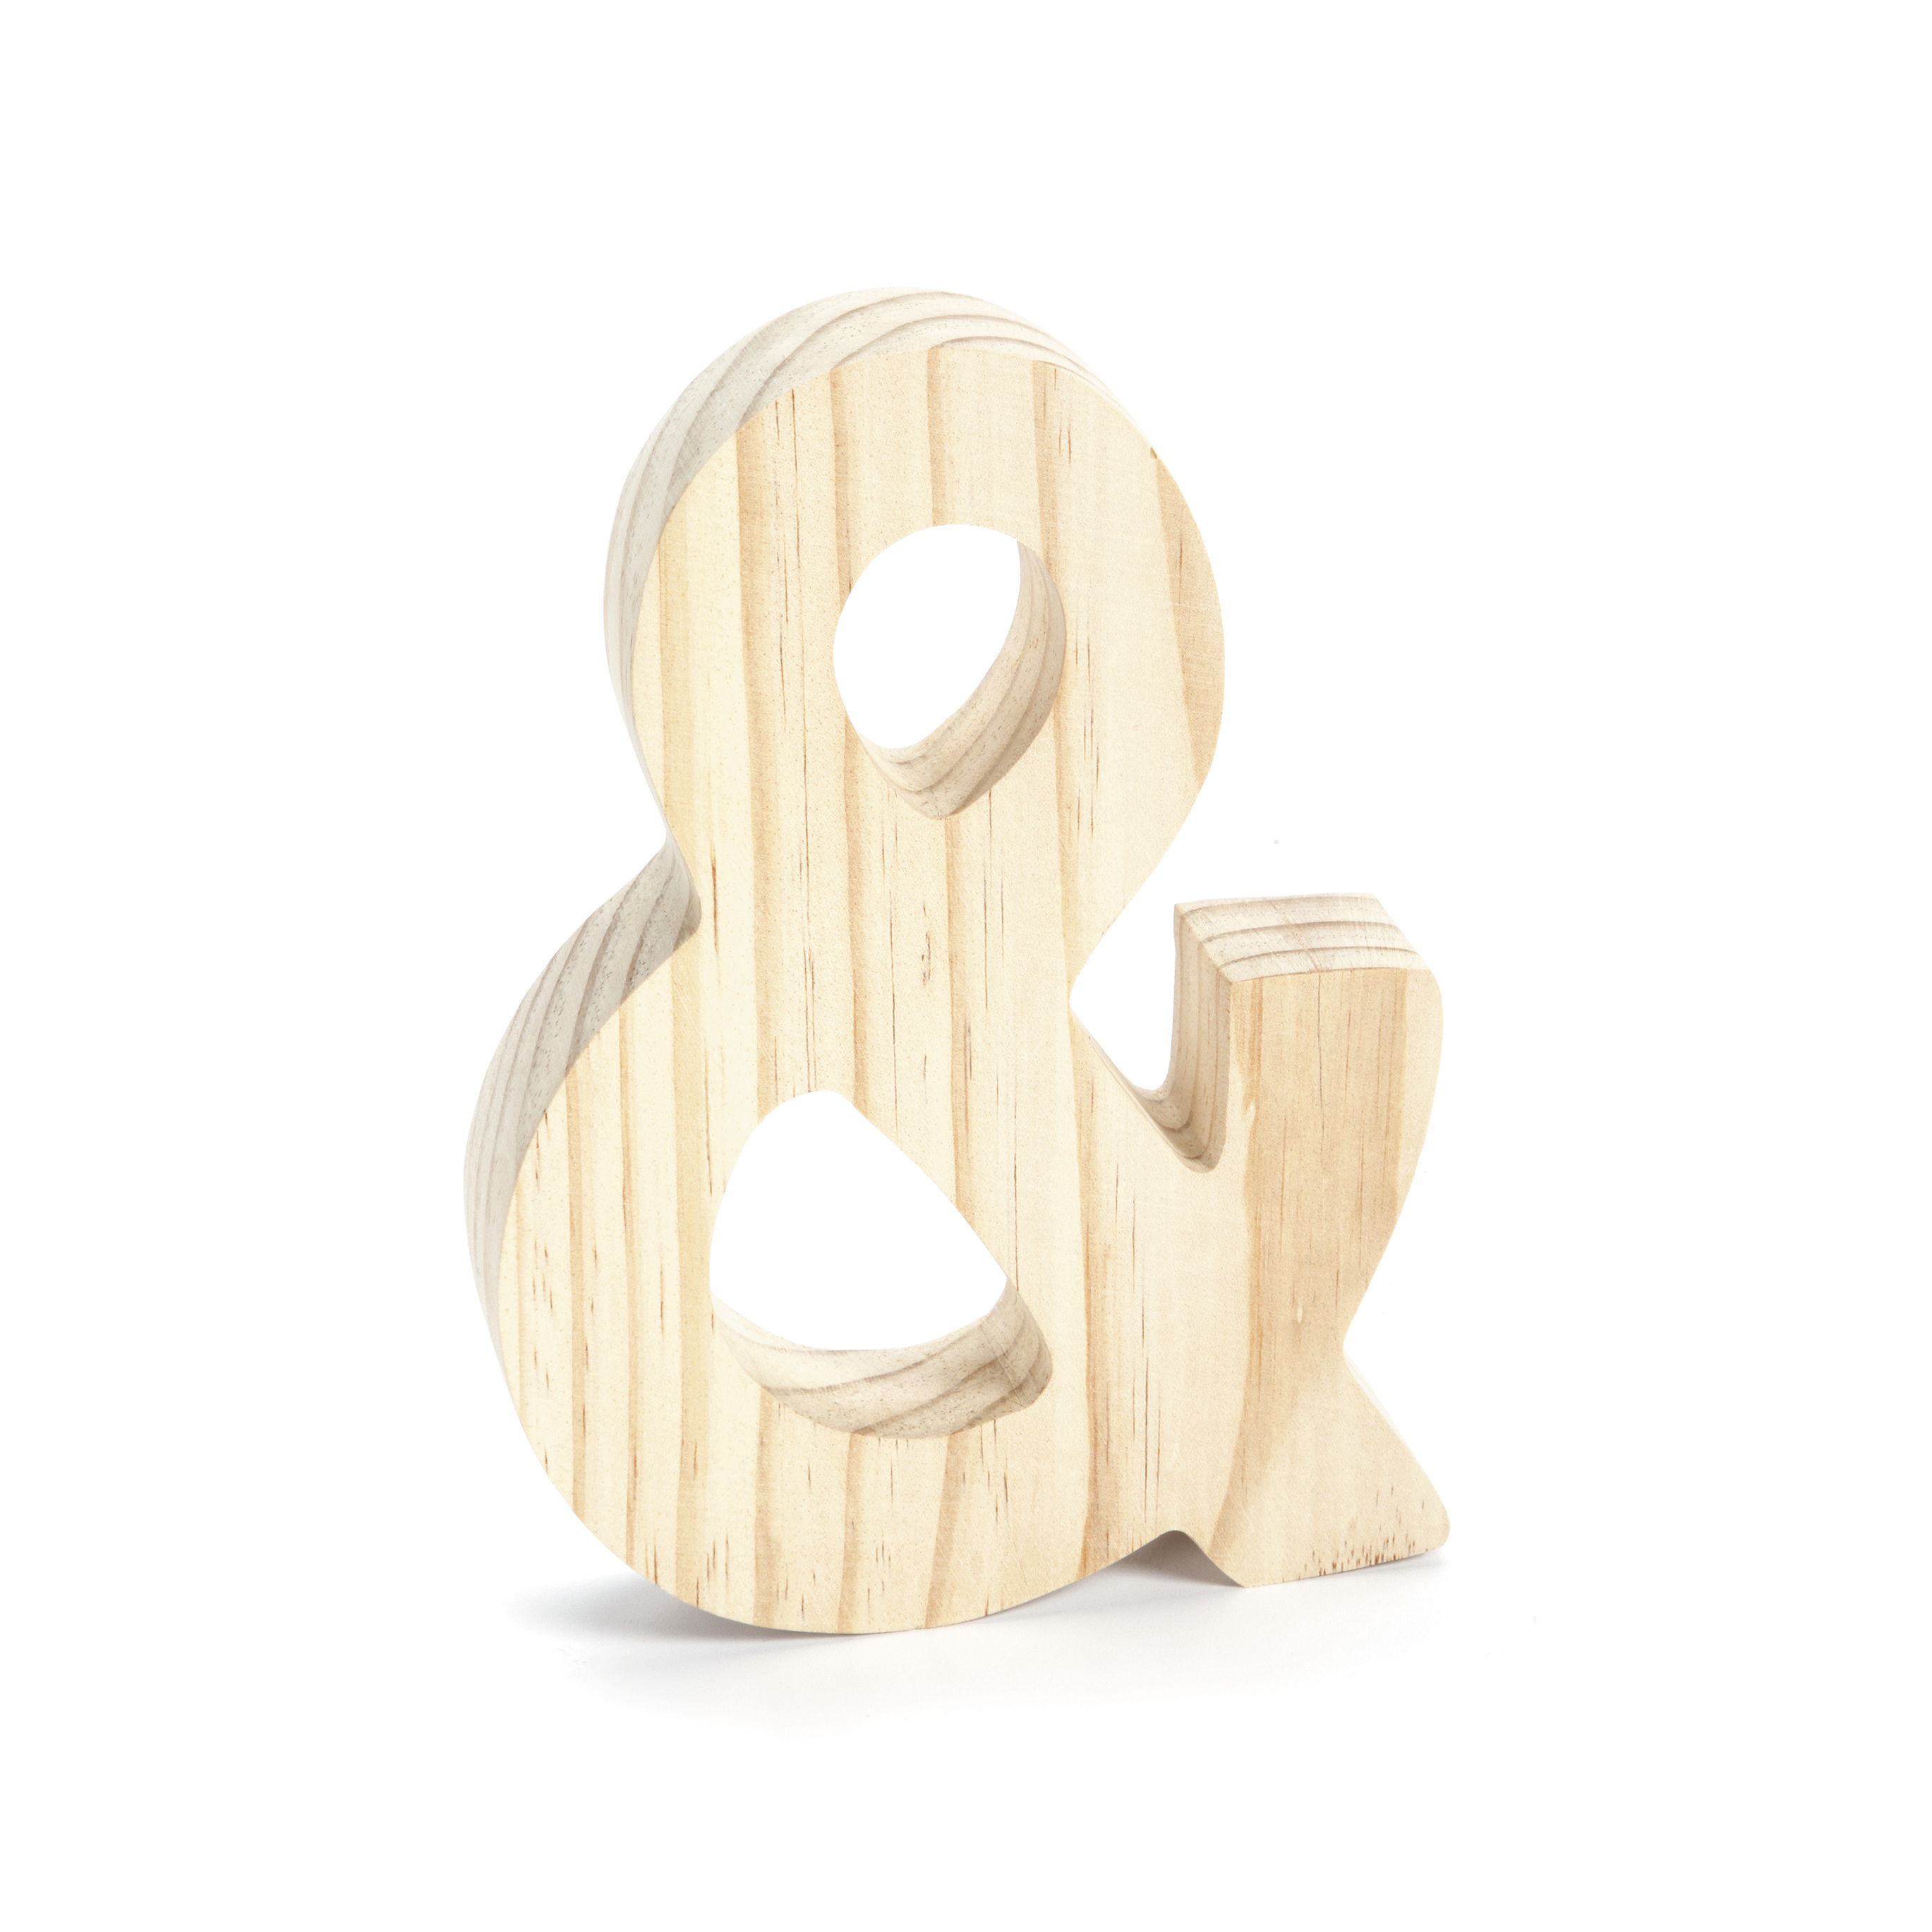 Chunky Unfinished Wood Letter Ampersand Symbol, 7-3/4 Inches High